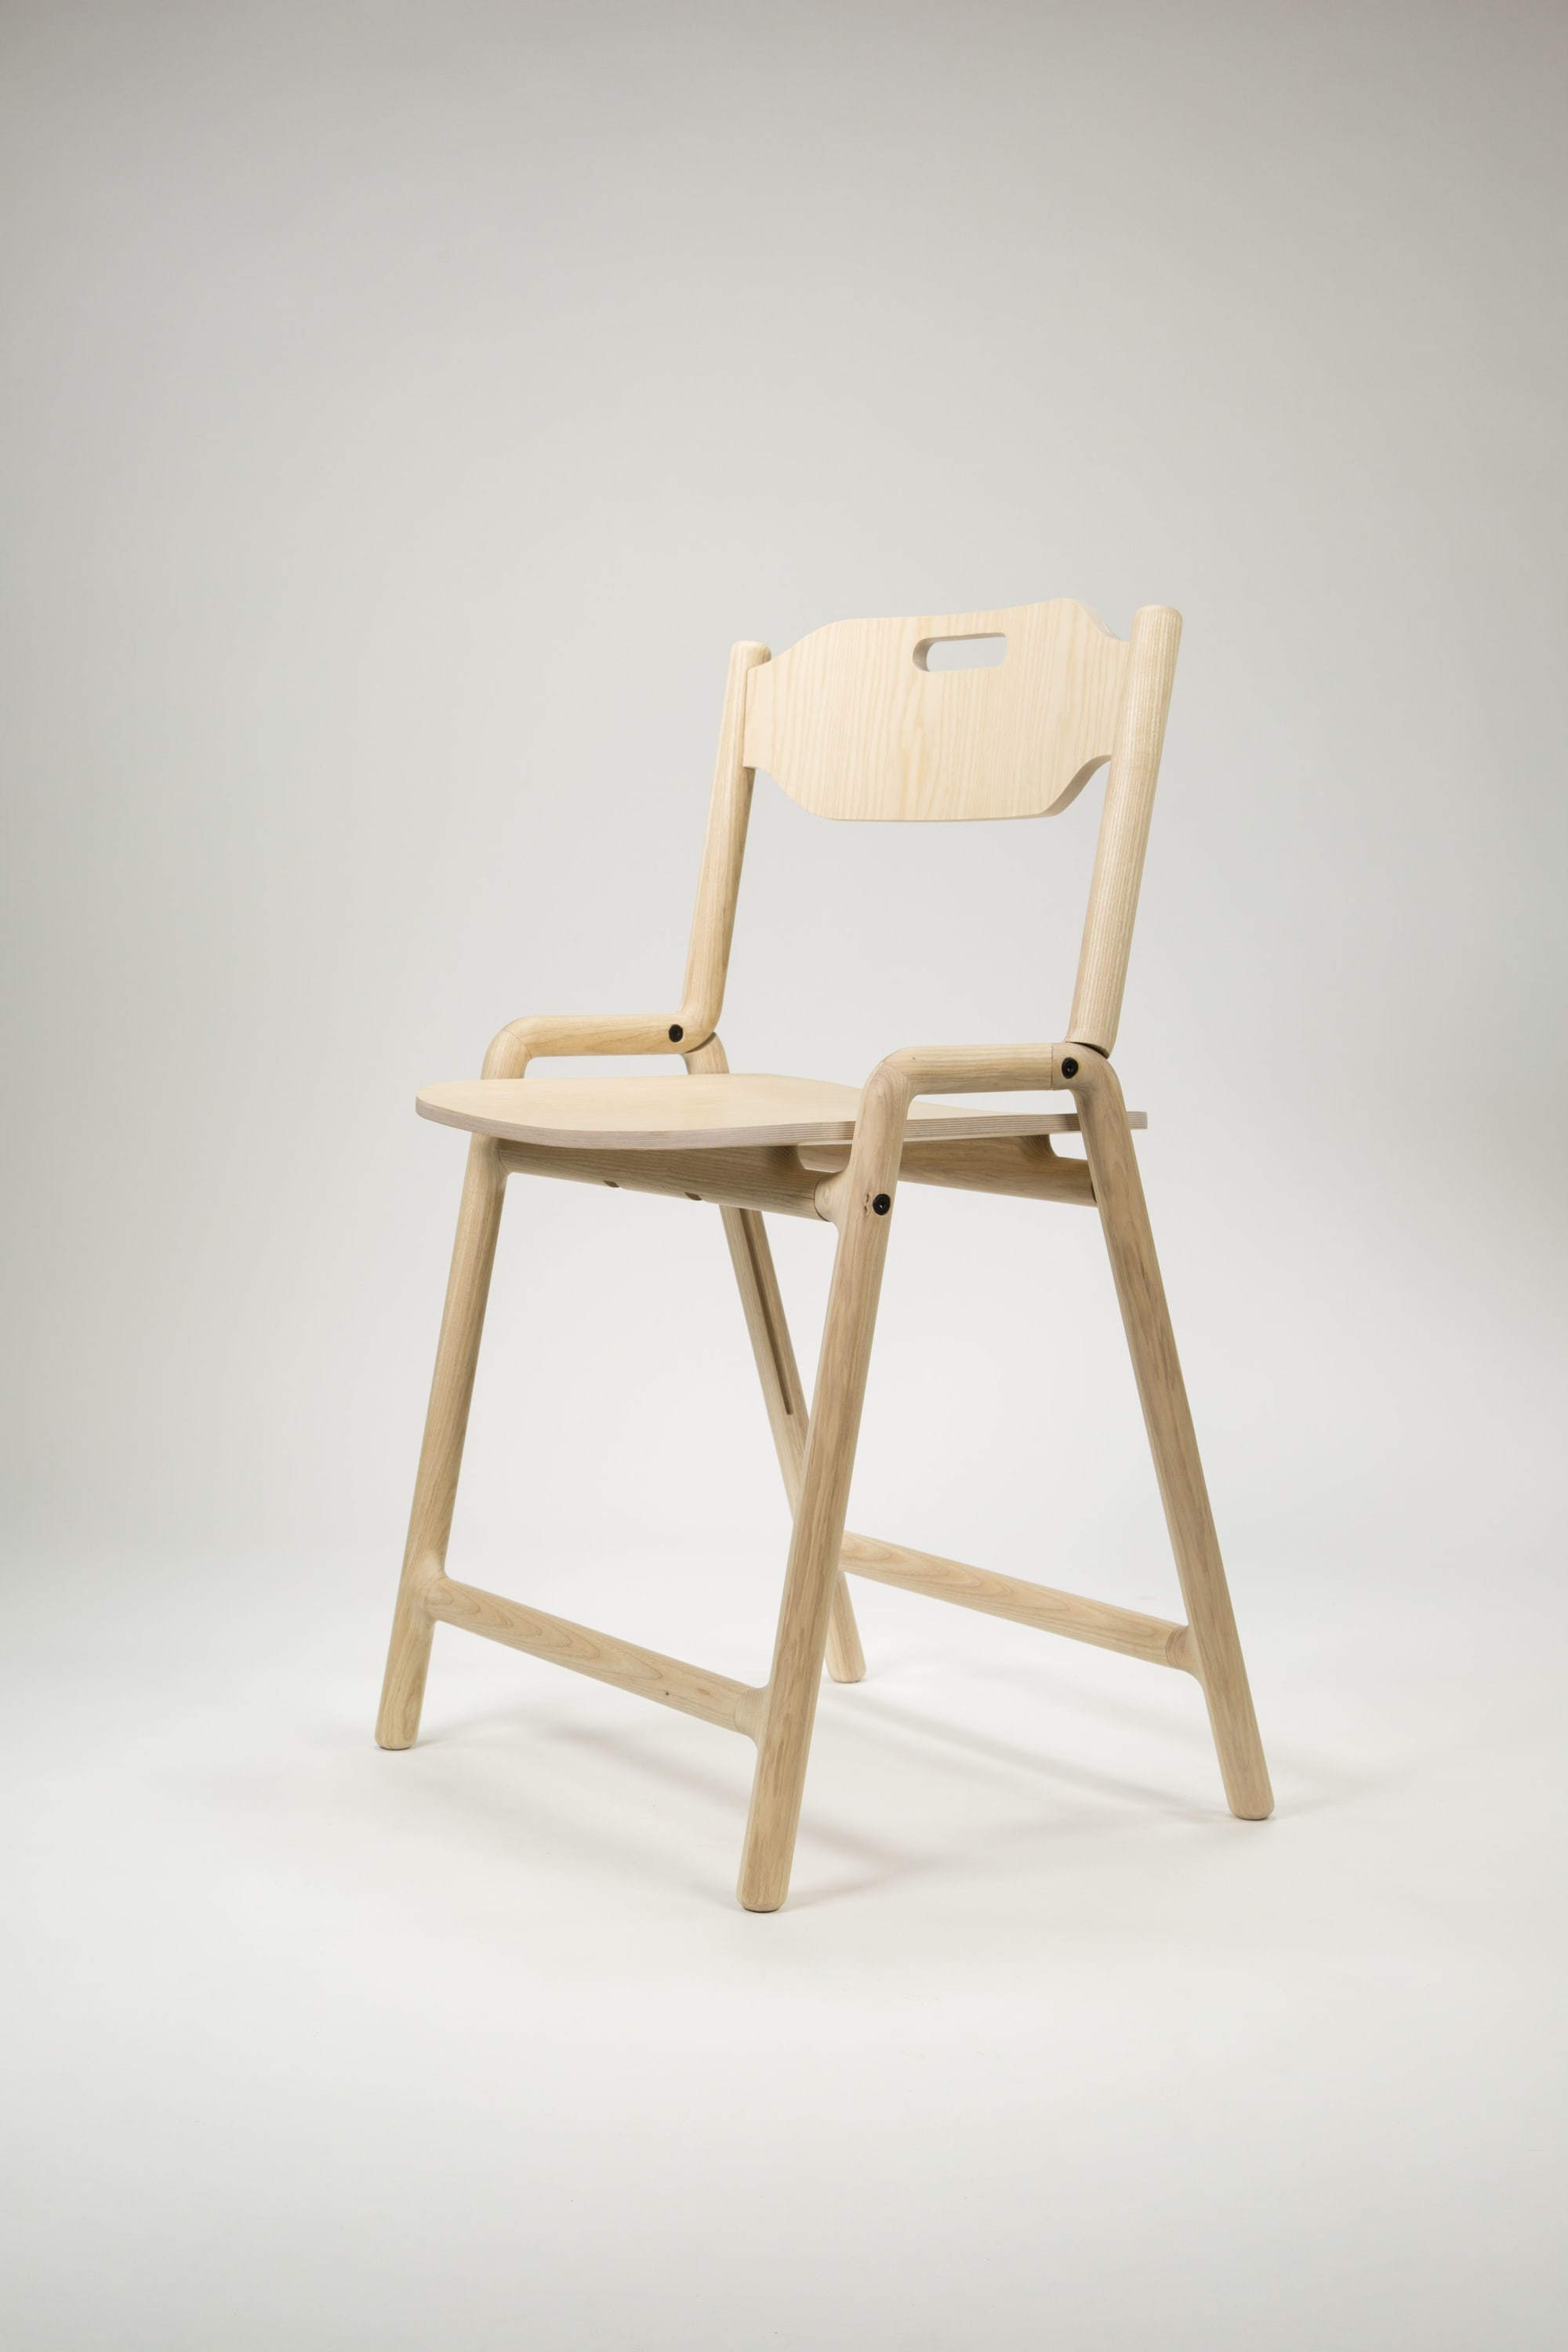 Chairs by Joe Parker seen at Private Residence, Oxford - Native Folding Chair